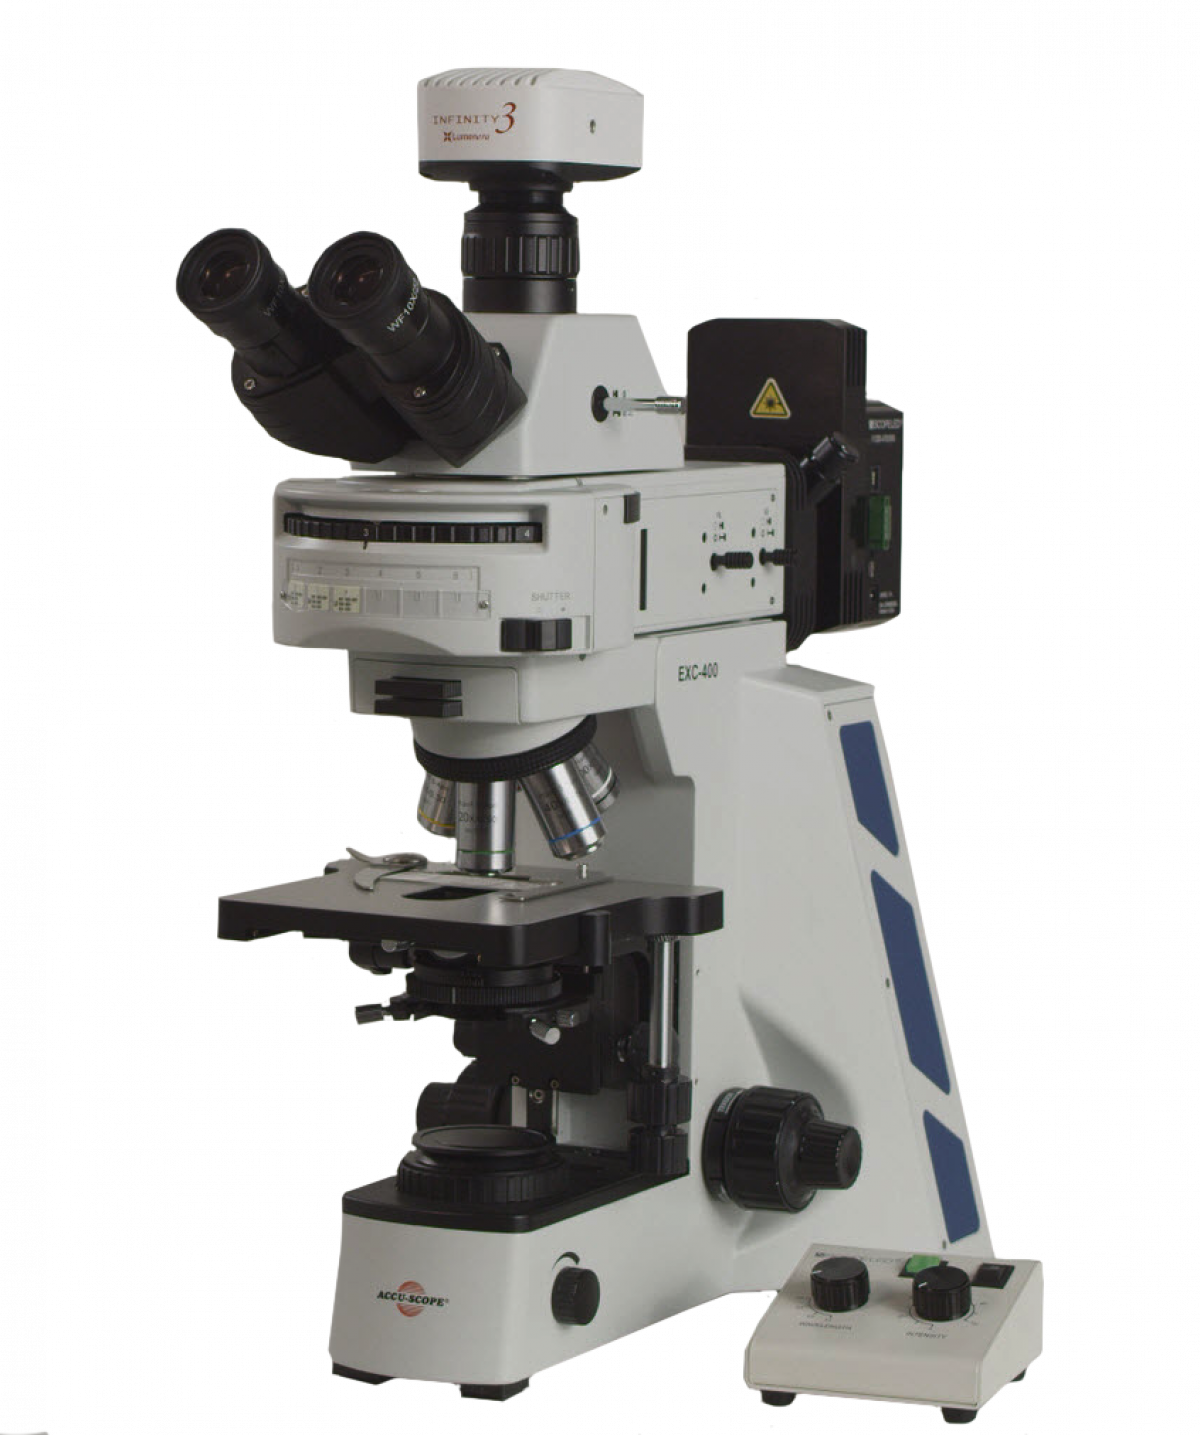 EXC-400 shown with optional fluorescence system, camera and camera adapter